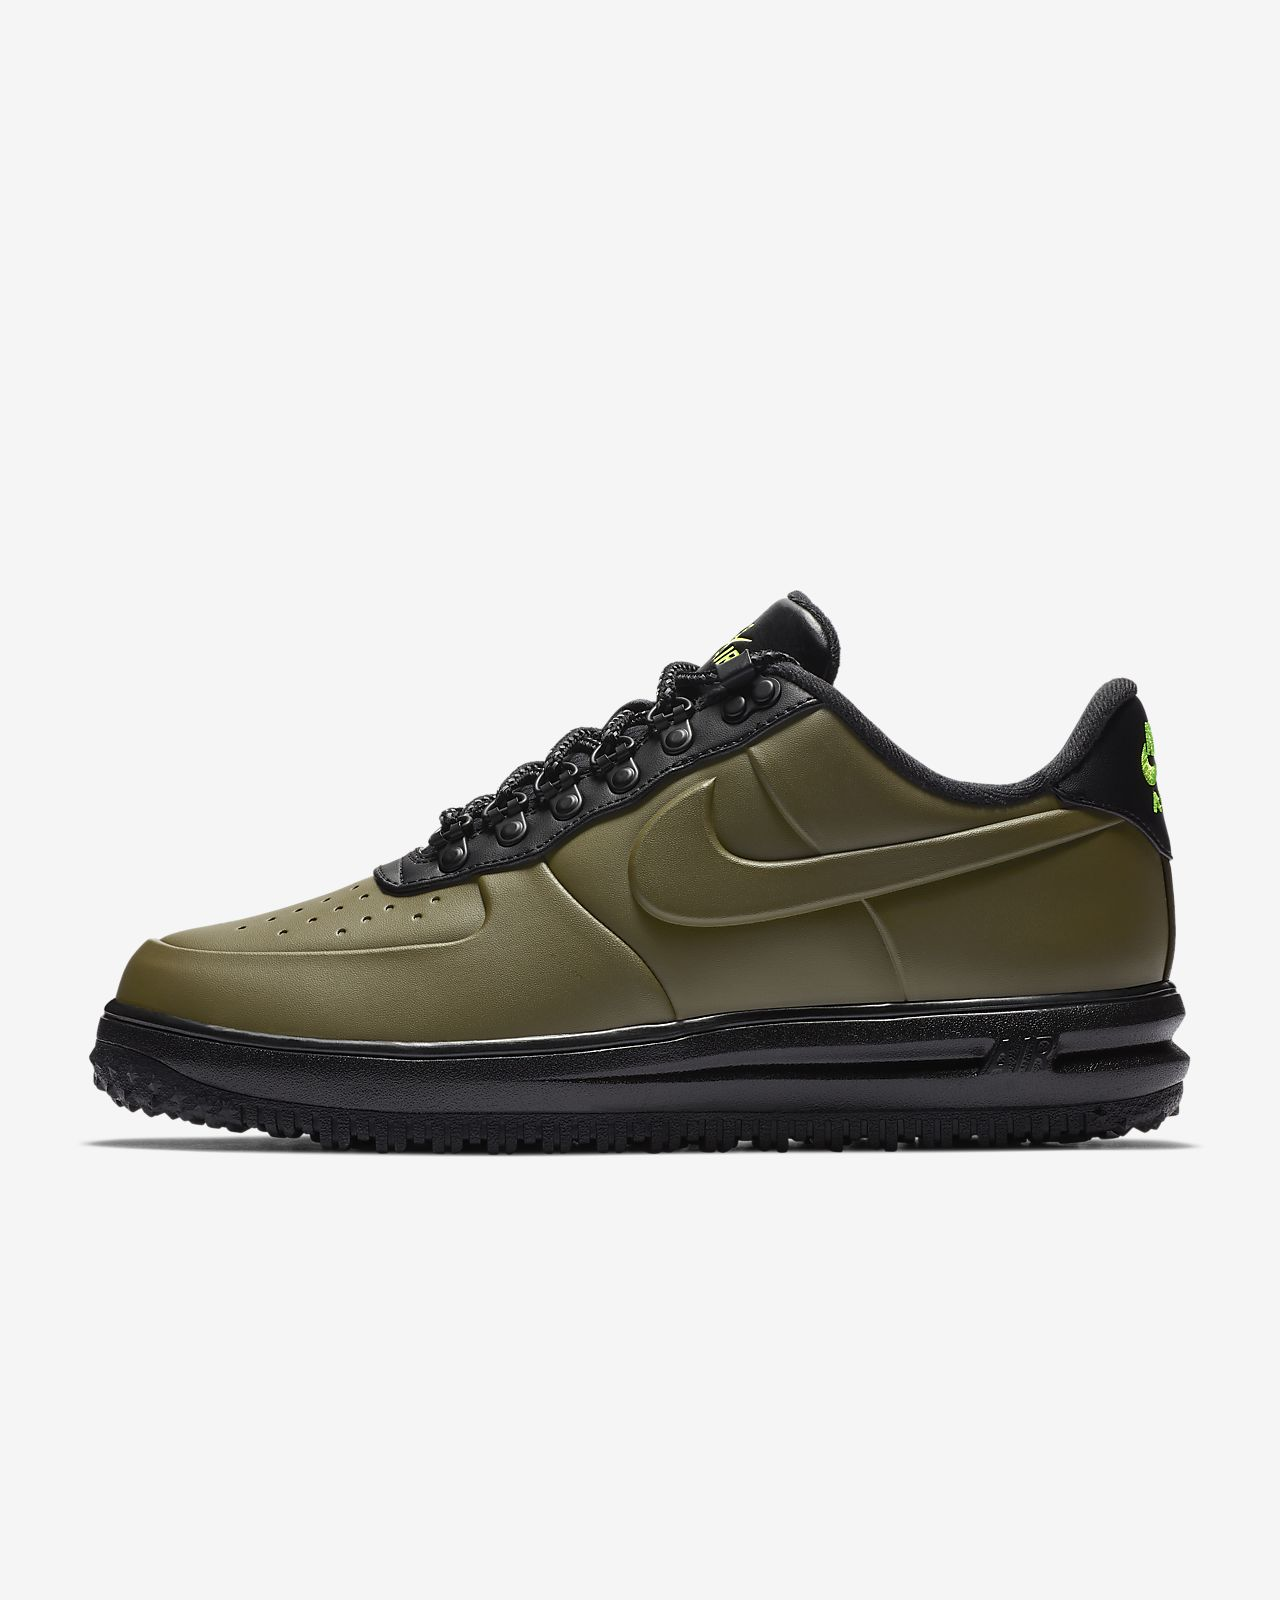 new concept 3fcd6 2d5a6 ... Nike Lunar Force 1 Duckboot Low – sko til mænd